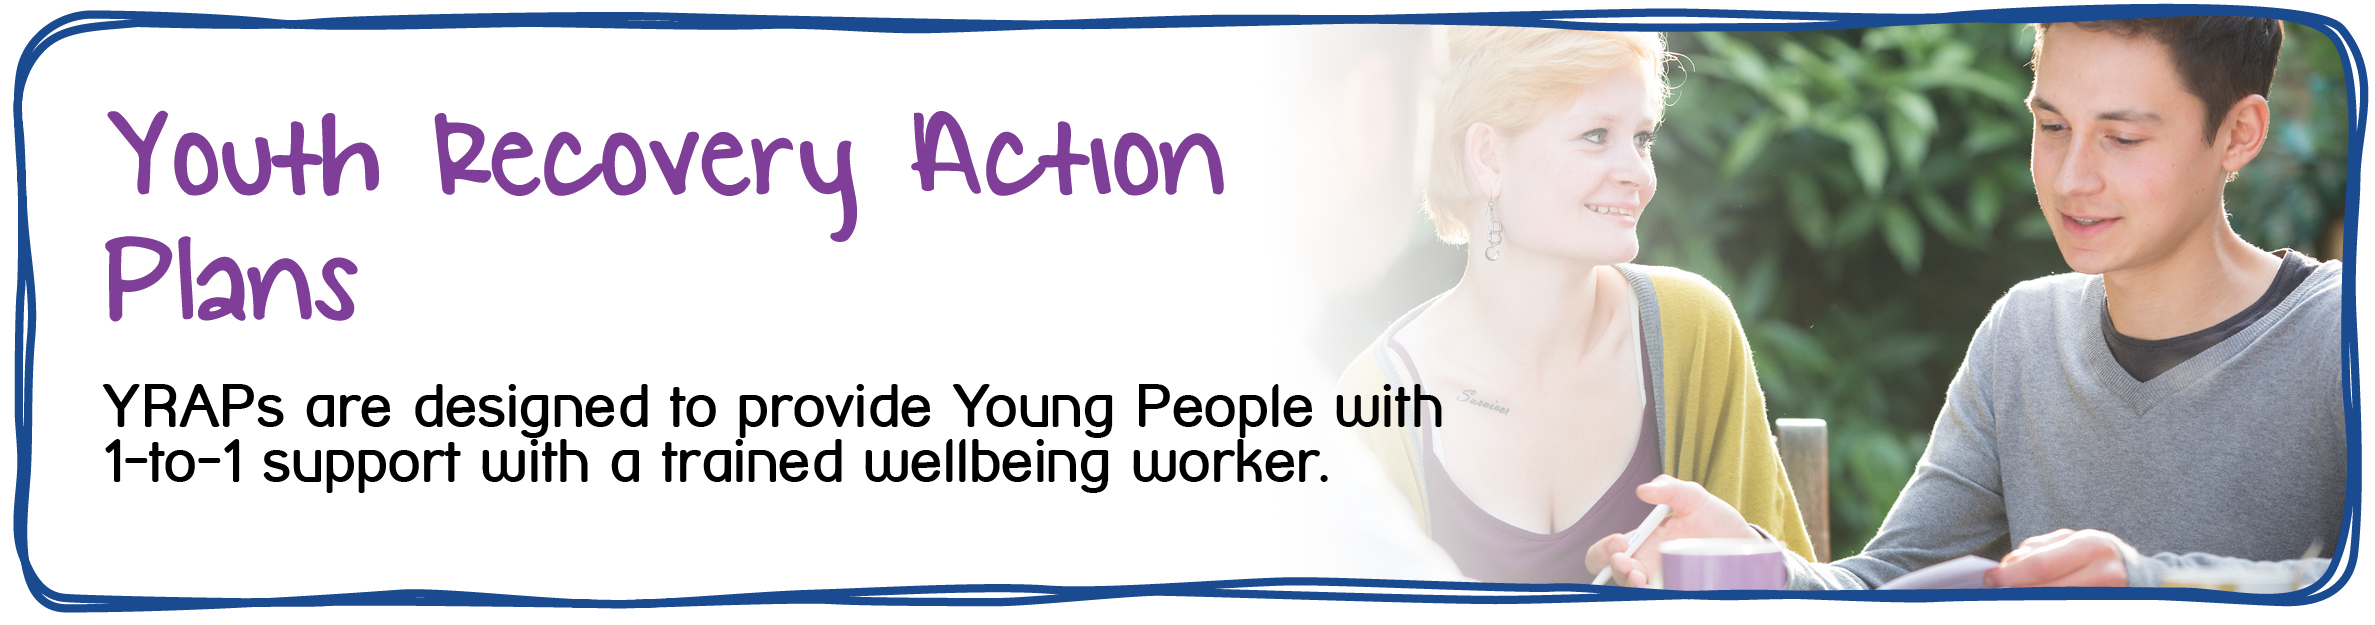 Youth Services - YRAPs - Recovery Action Plans designed to help get Young People back on track.